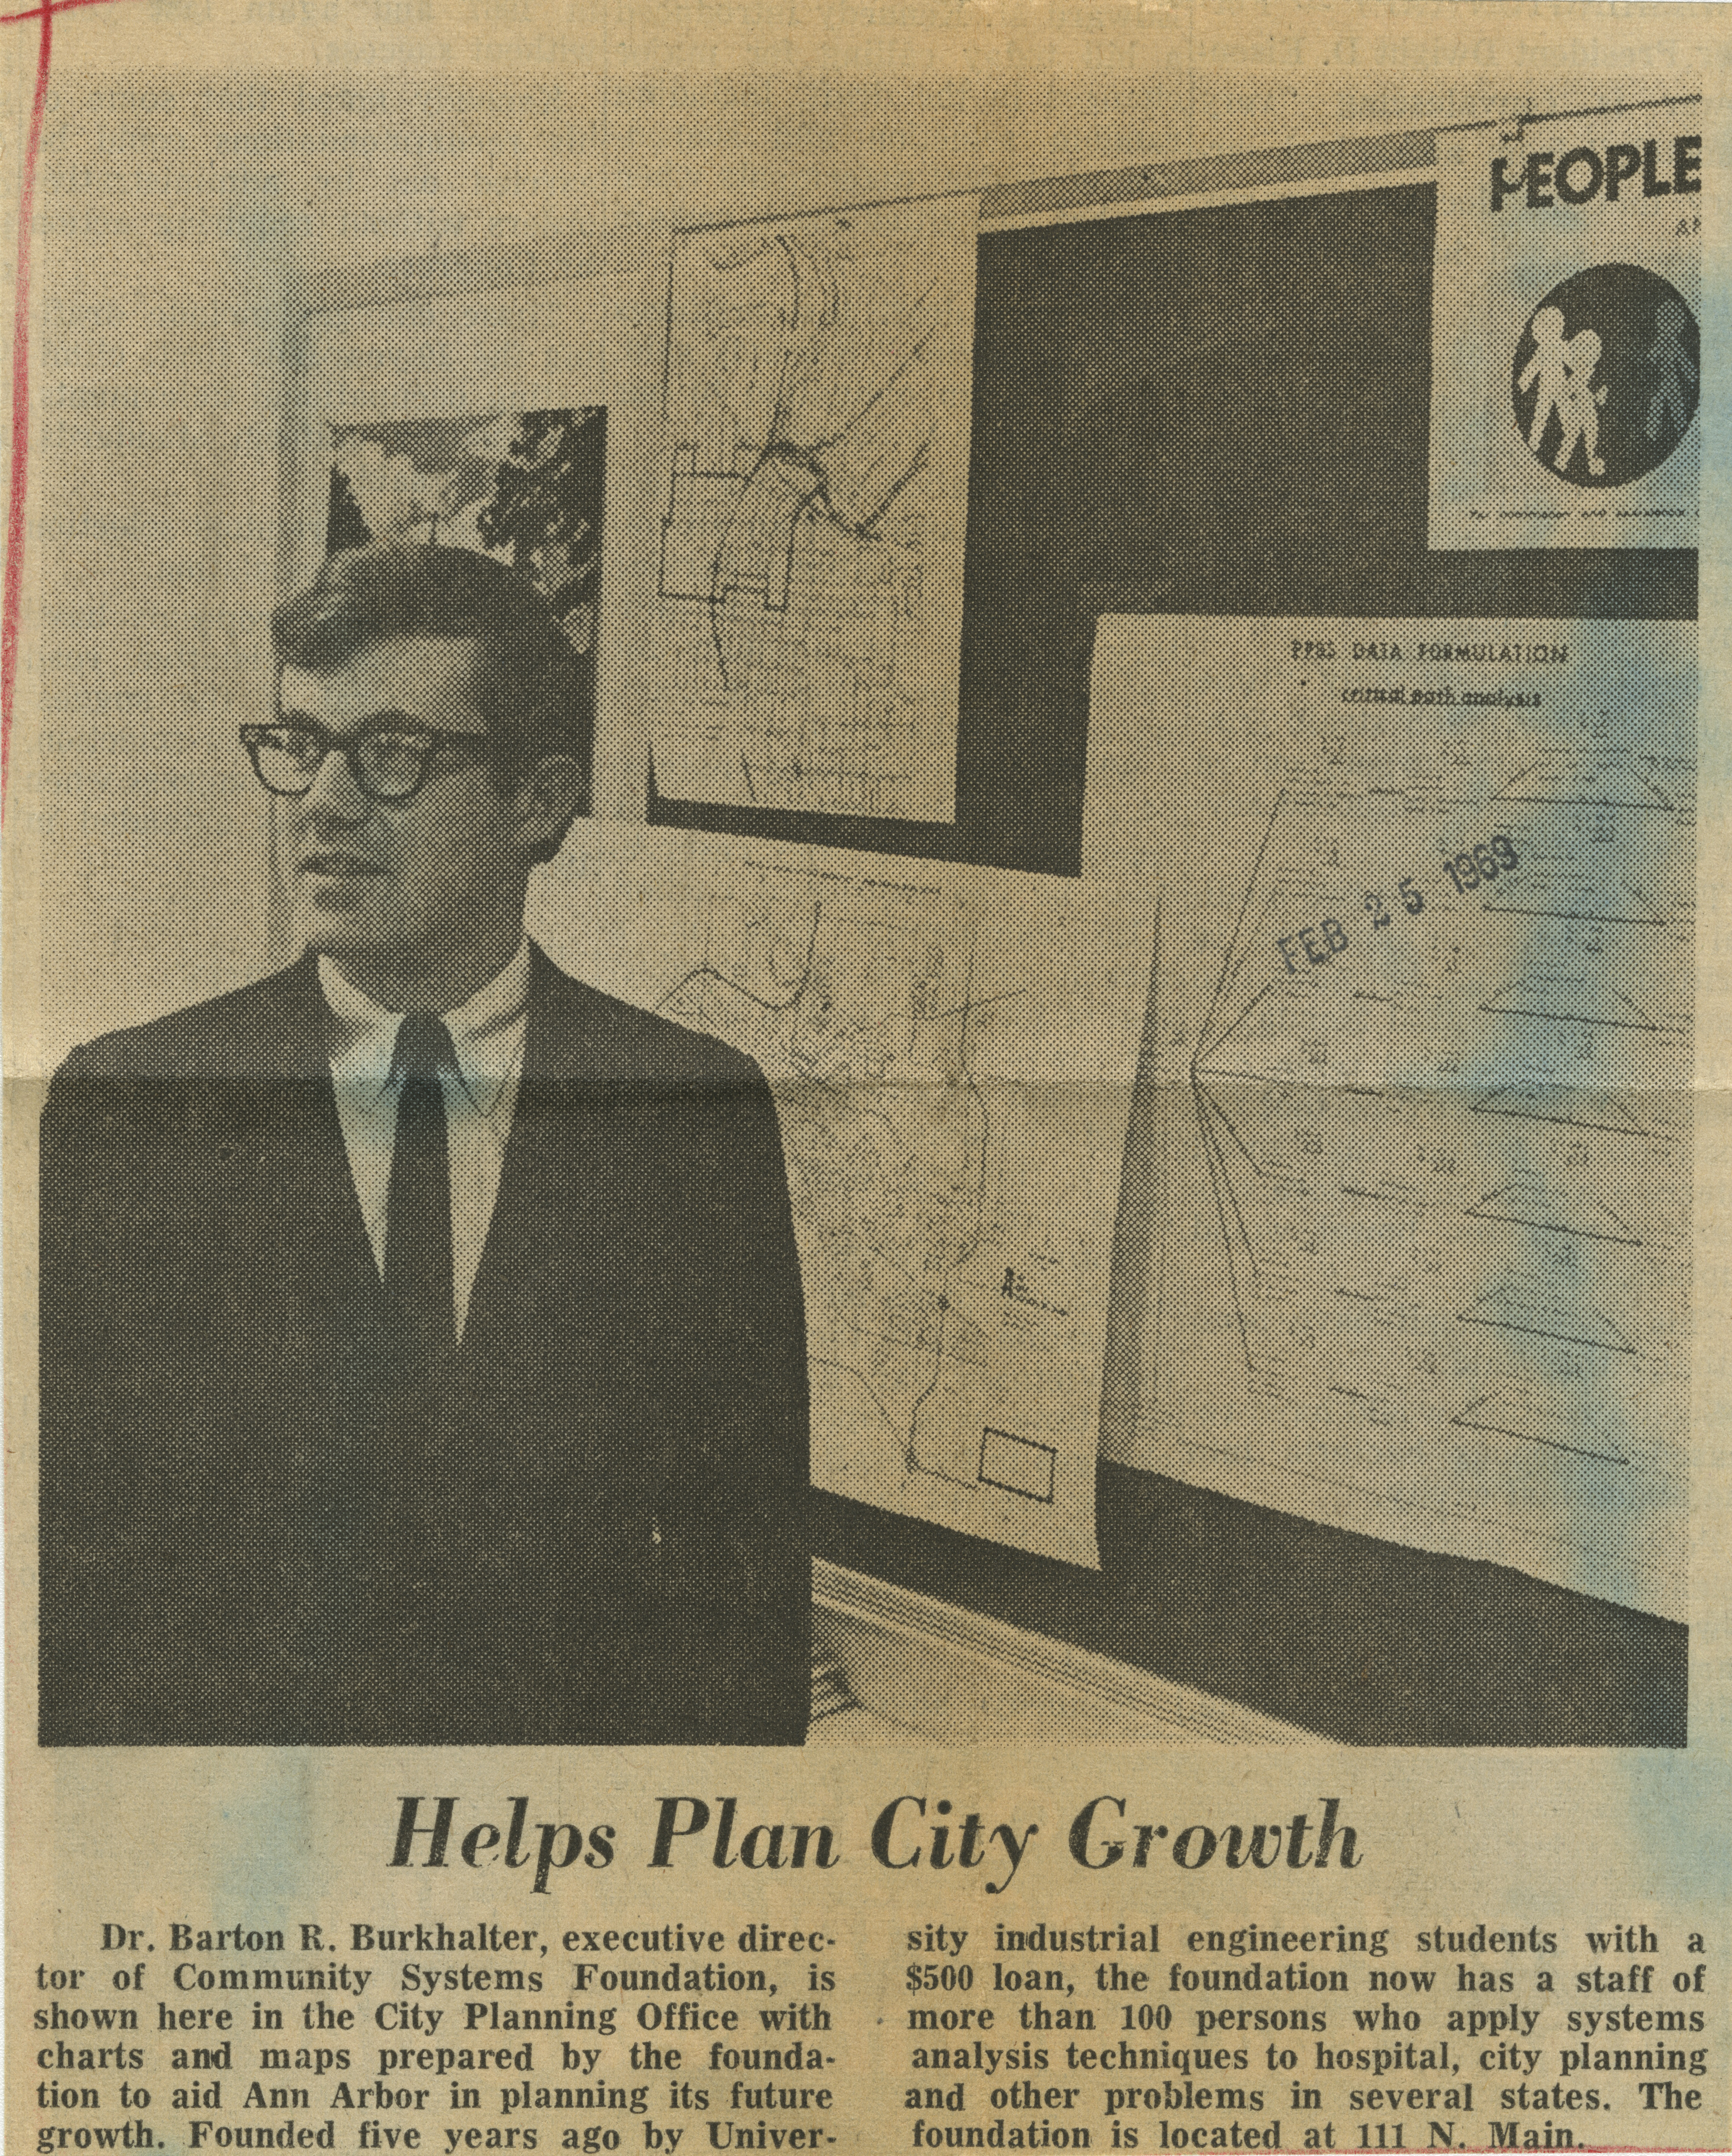 Helps Plan City Growth image